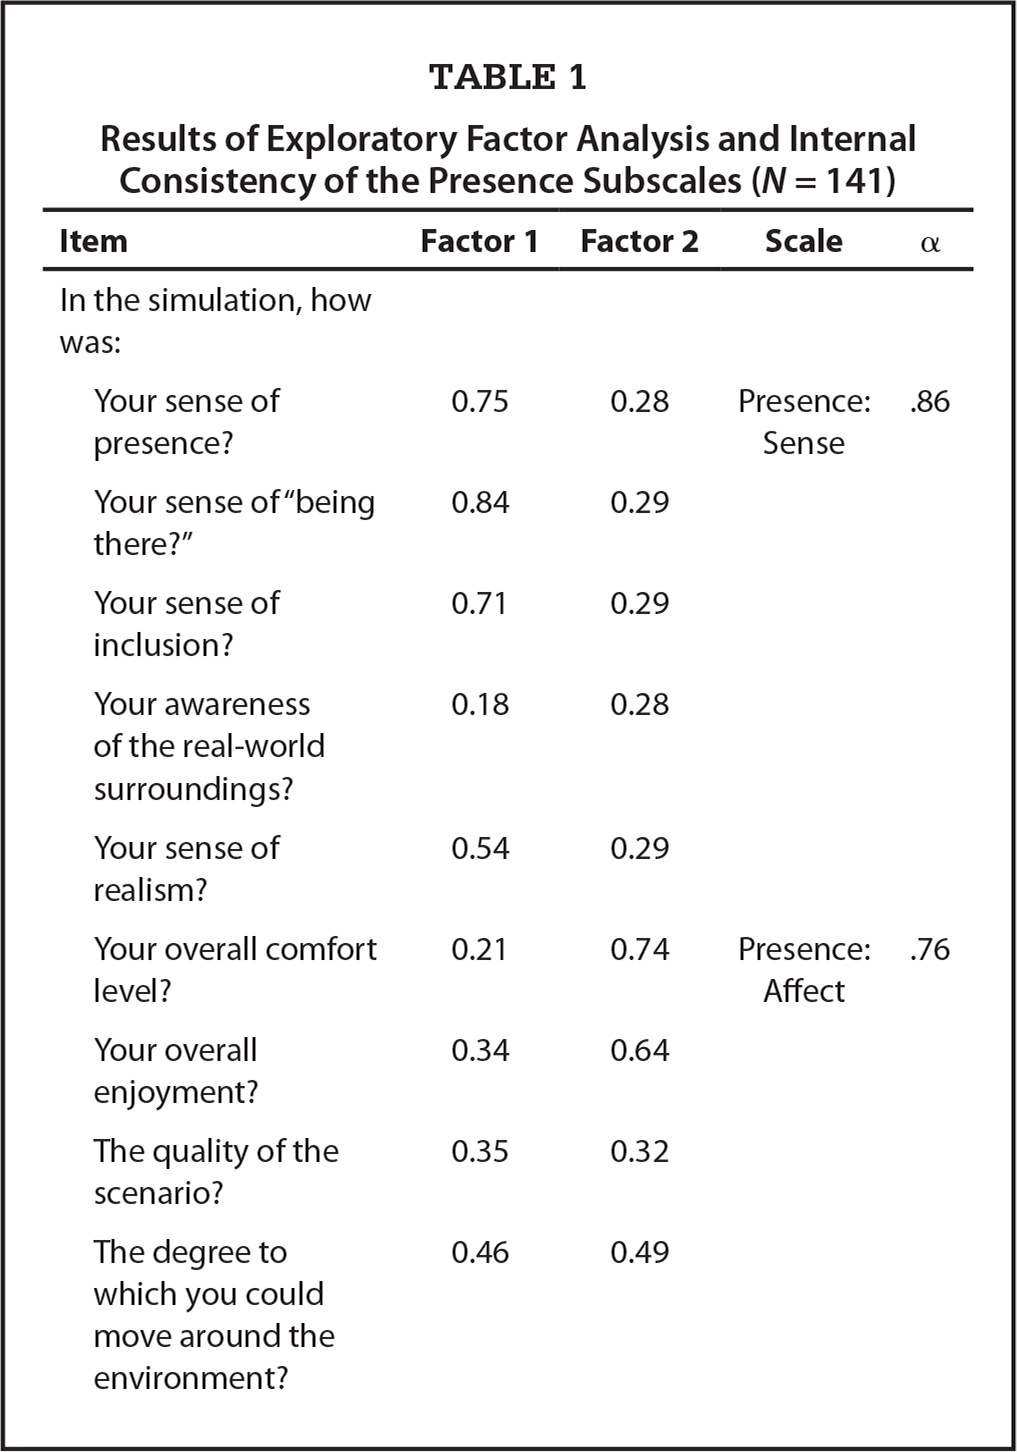 Results of Exploratory Factor Analysis and Internal Consistency of the Presence Subscales (N = 141)